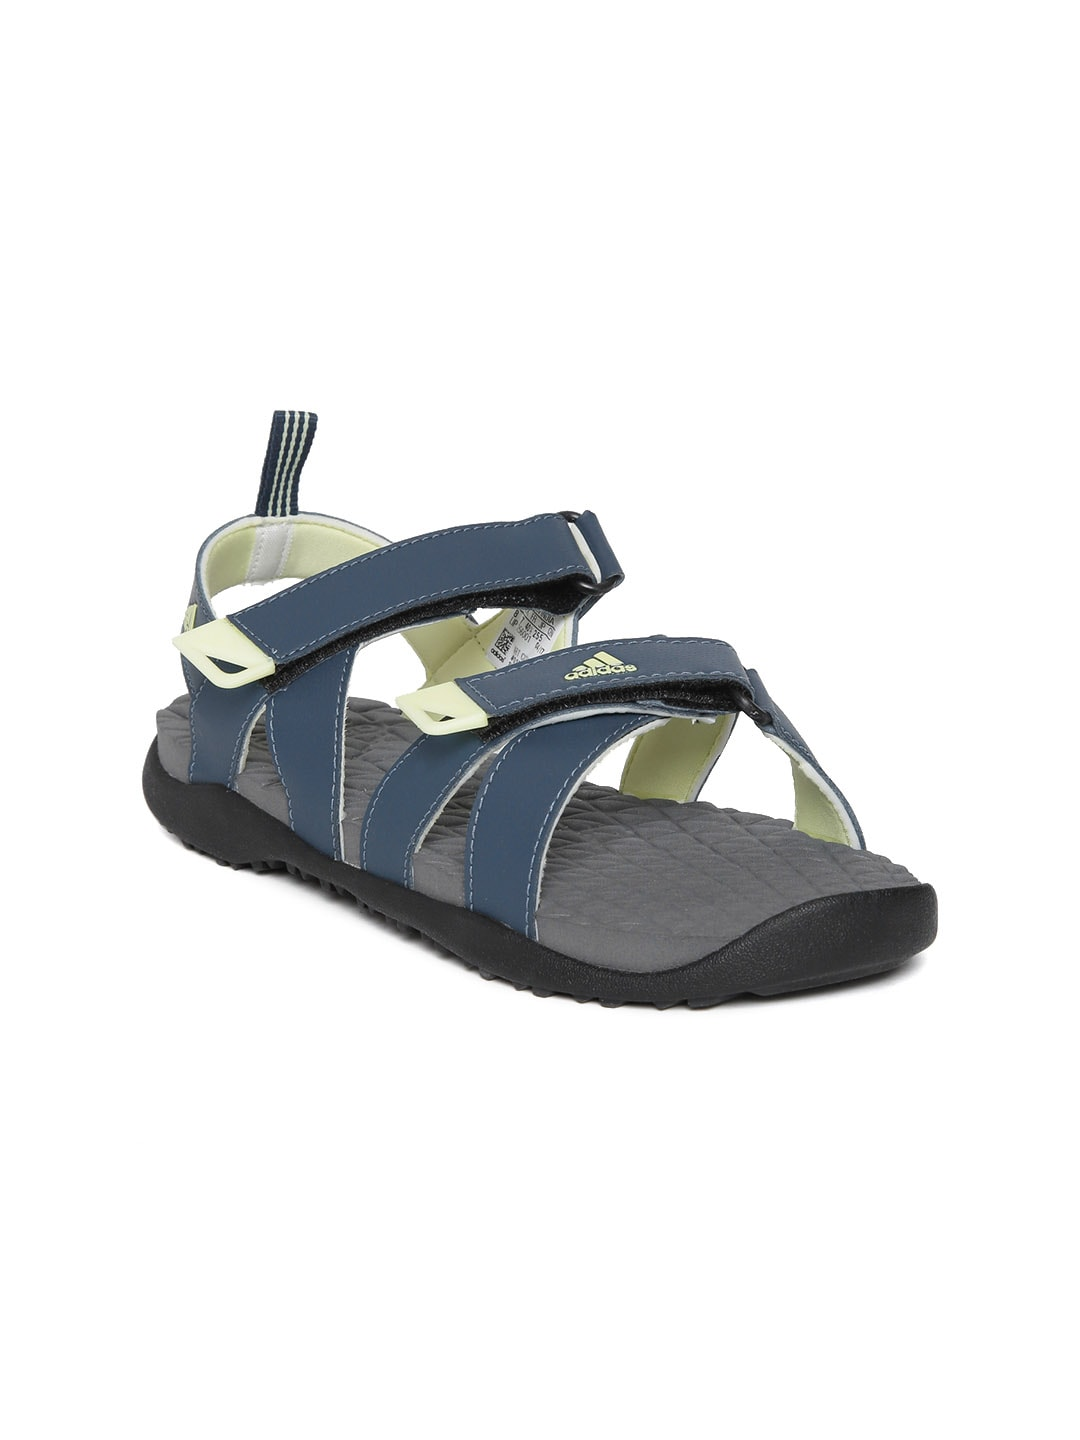 327d75379af8 Adidas Floaters - Buy Adidas Sports Sandals Online in India